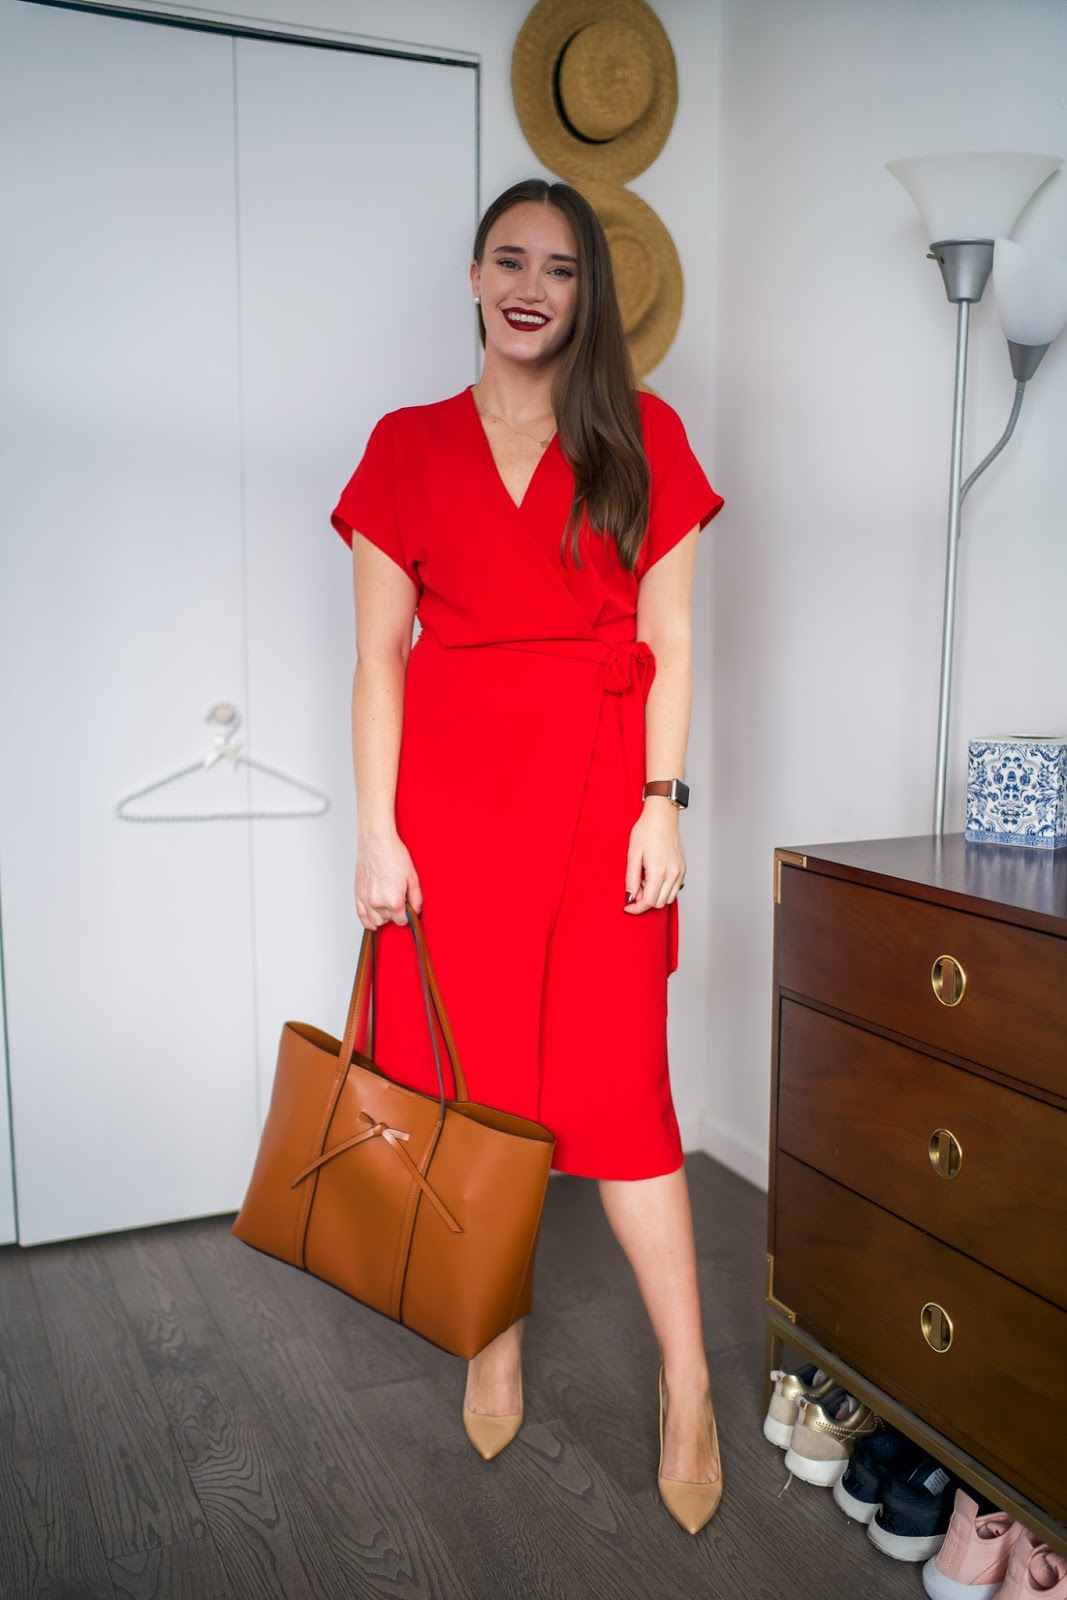 A Simple Office Look for the Work by popular New York fashion blogger Covering the Bases